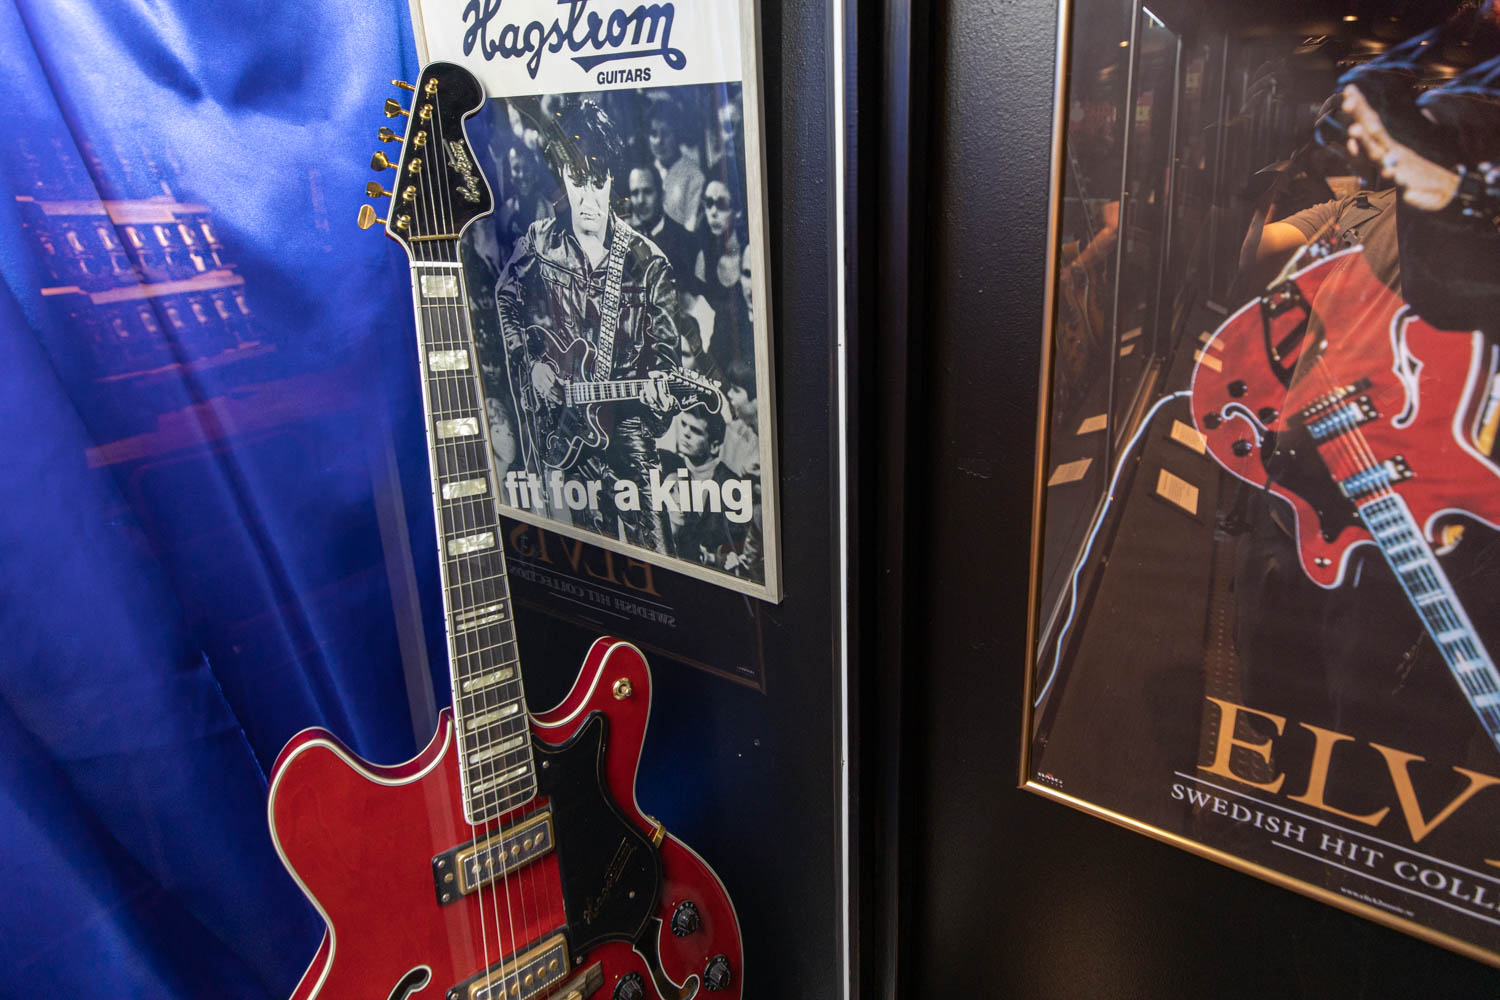 Hagstrom museum - where the electric guitar started